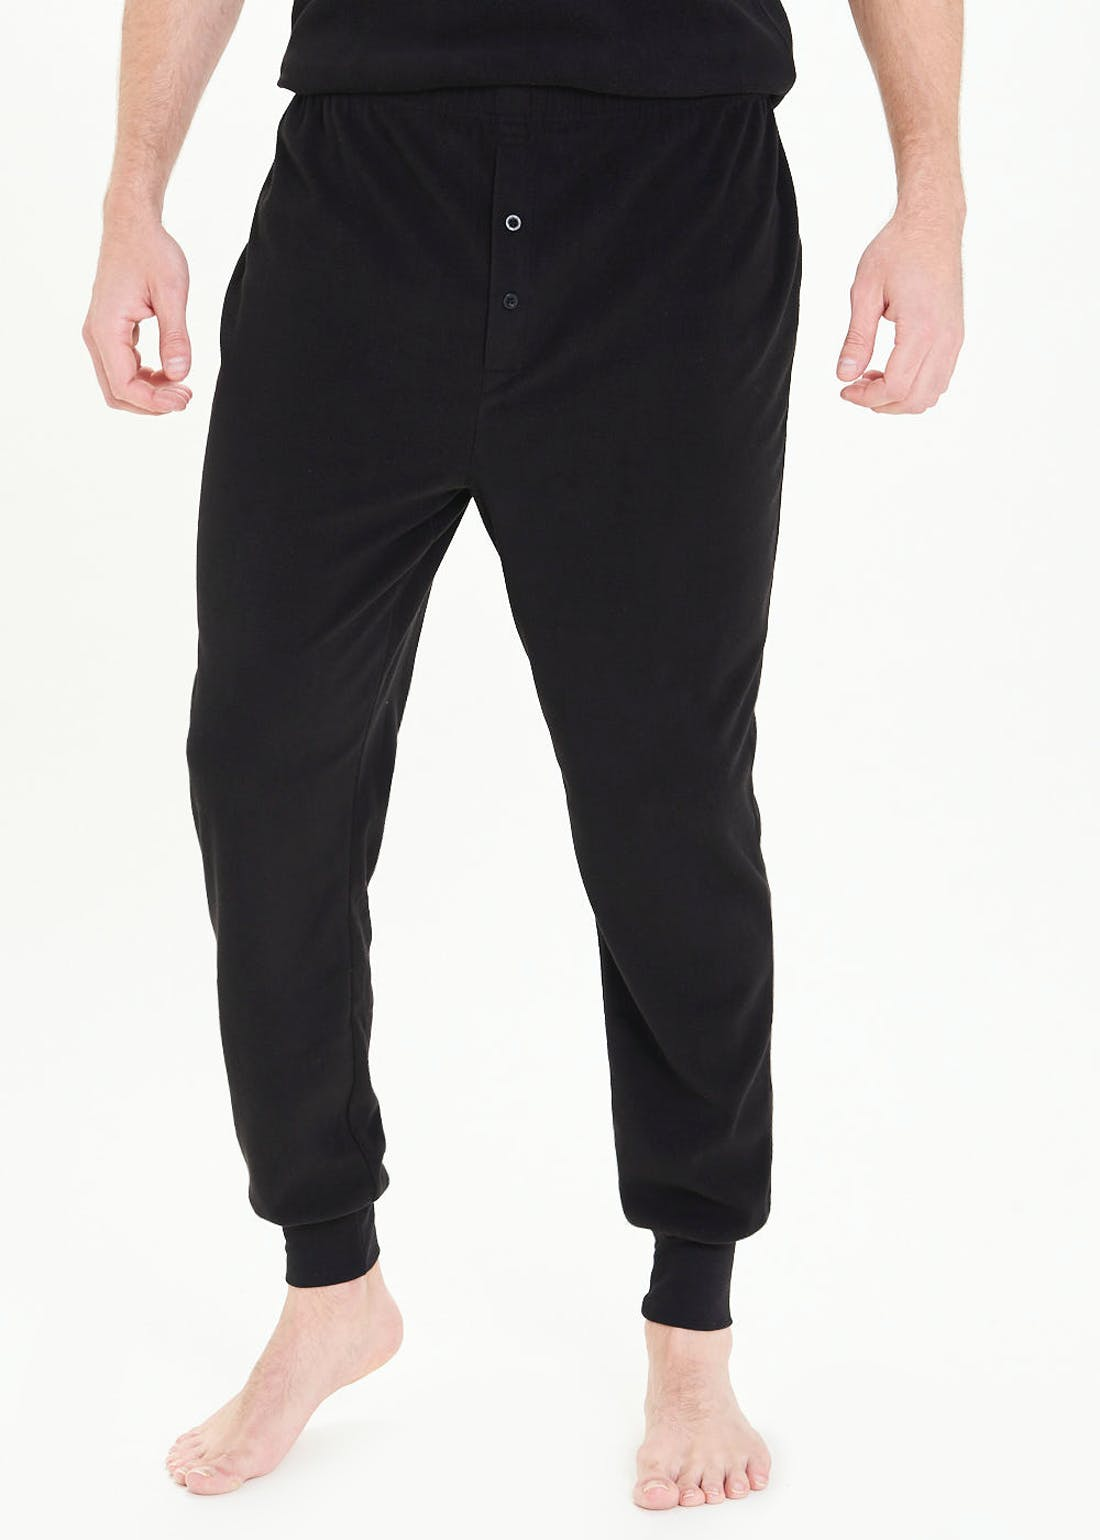 Microfleece Thermal Long Johns